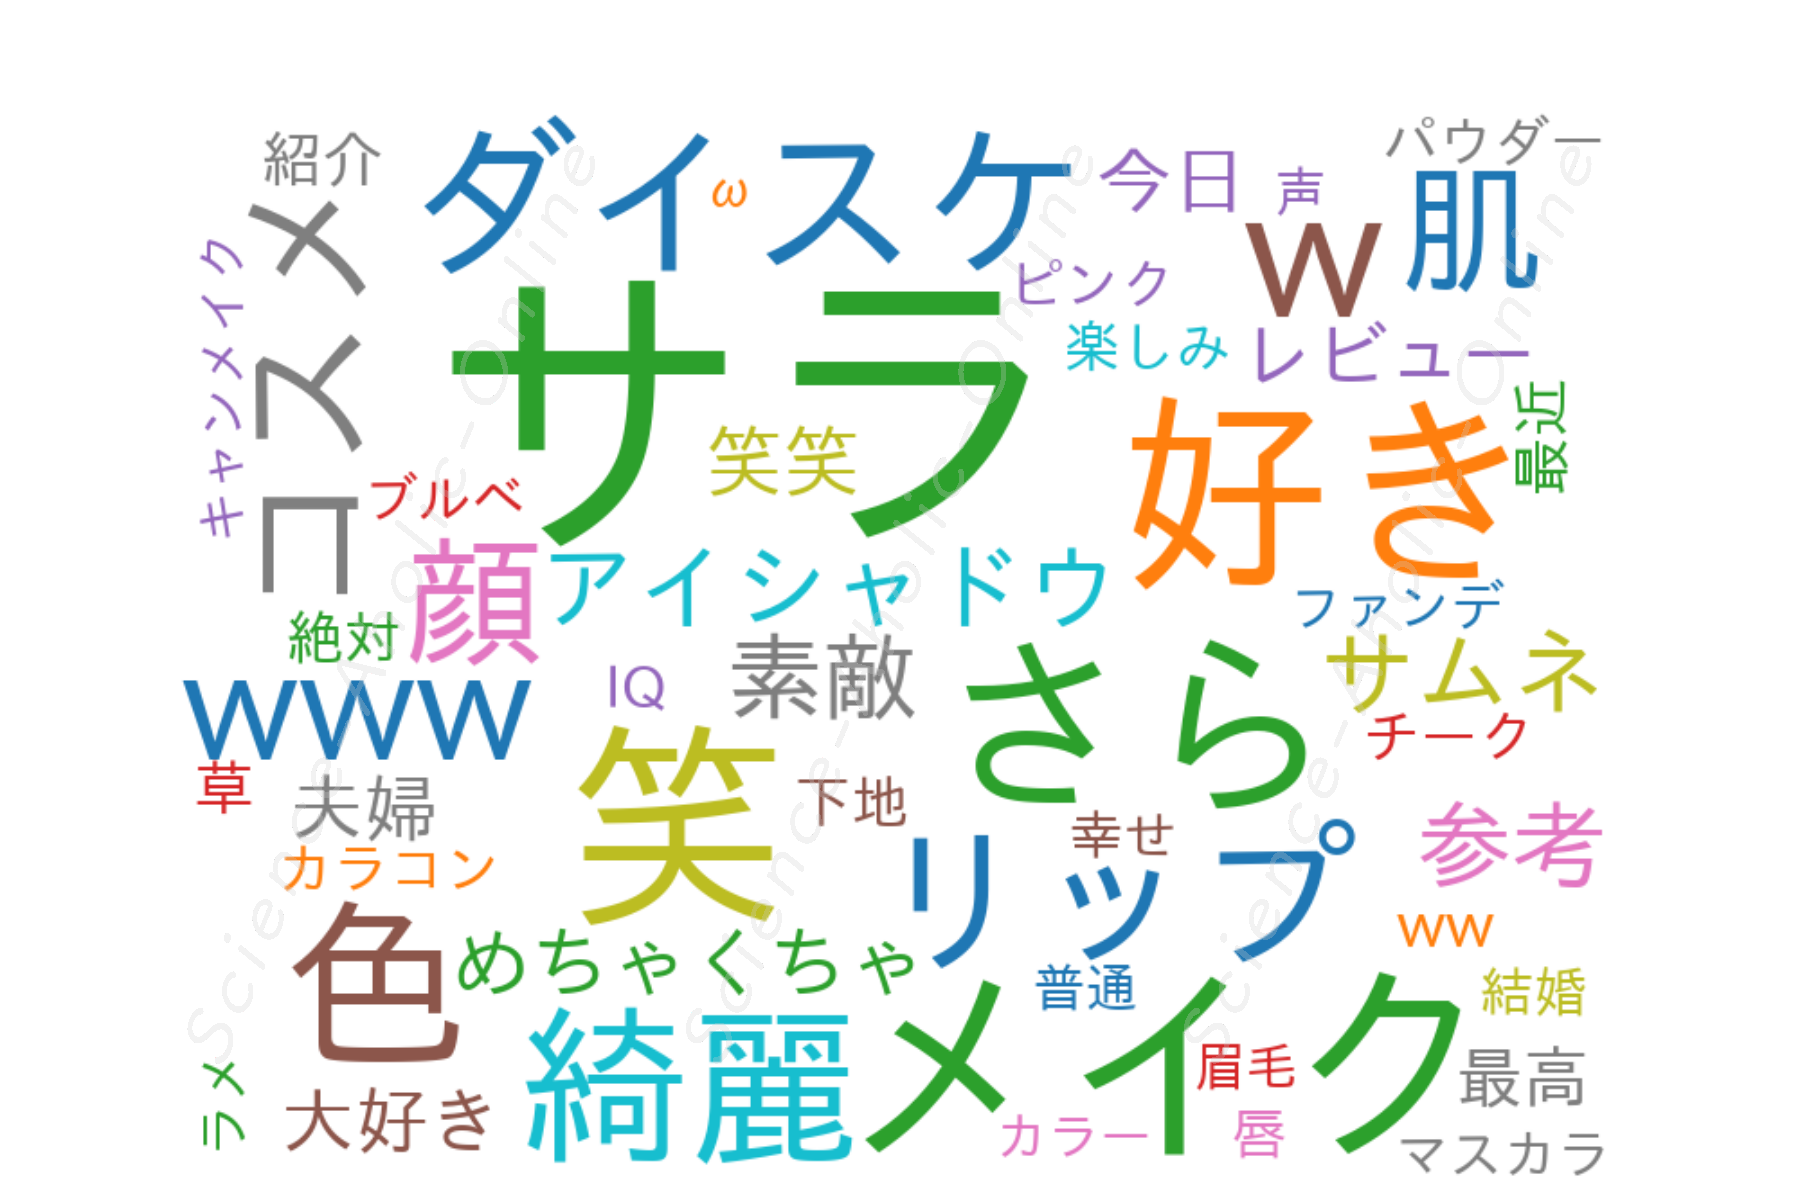 https://science-aholic-online.com/wp-content/uploads/2020/08/wordcloud_コスメヲタちゃんねるサラ.png